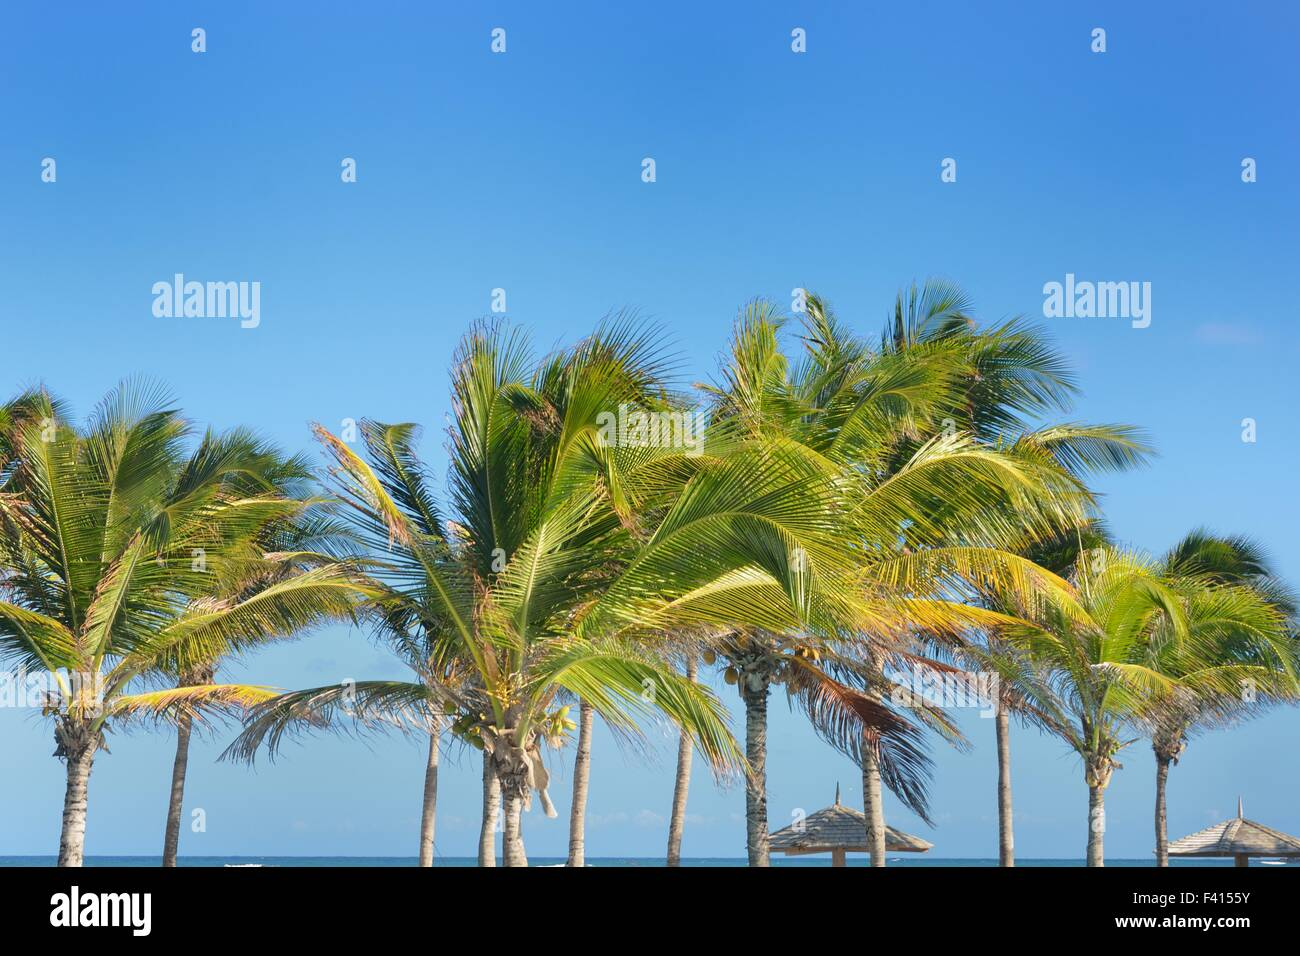 line  of palm trees - Stock Image